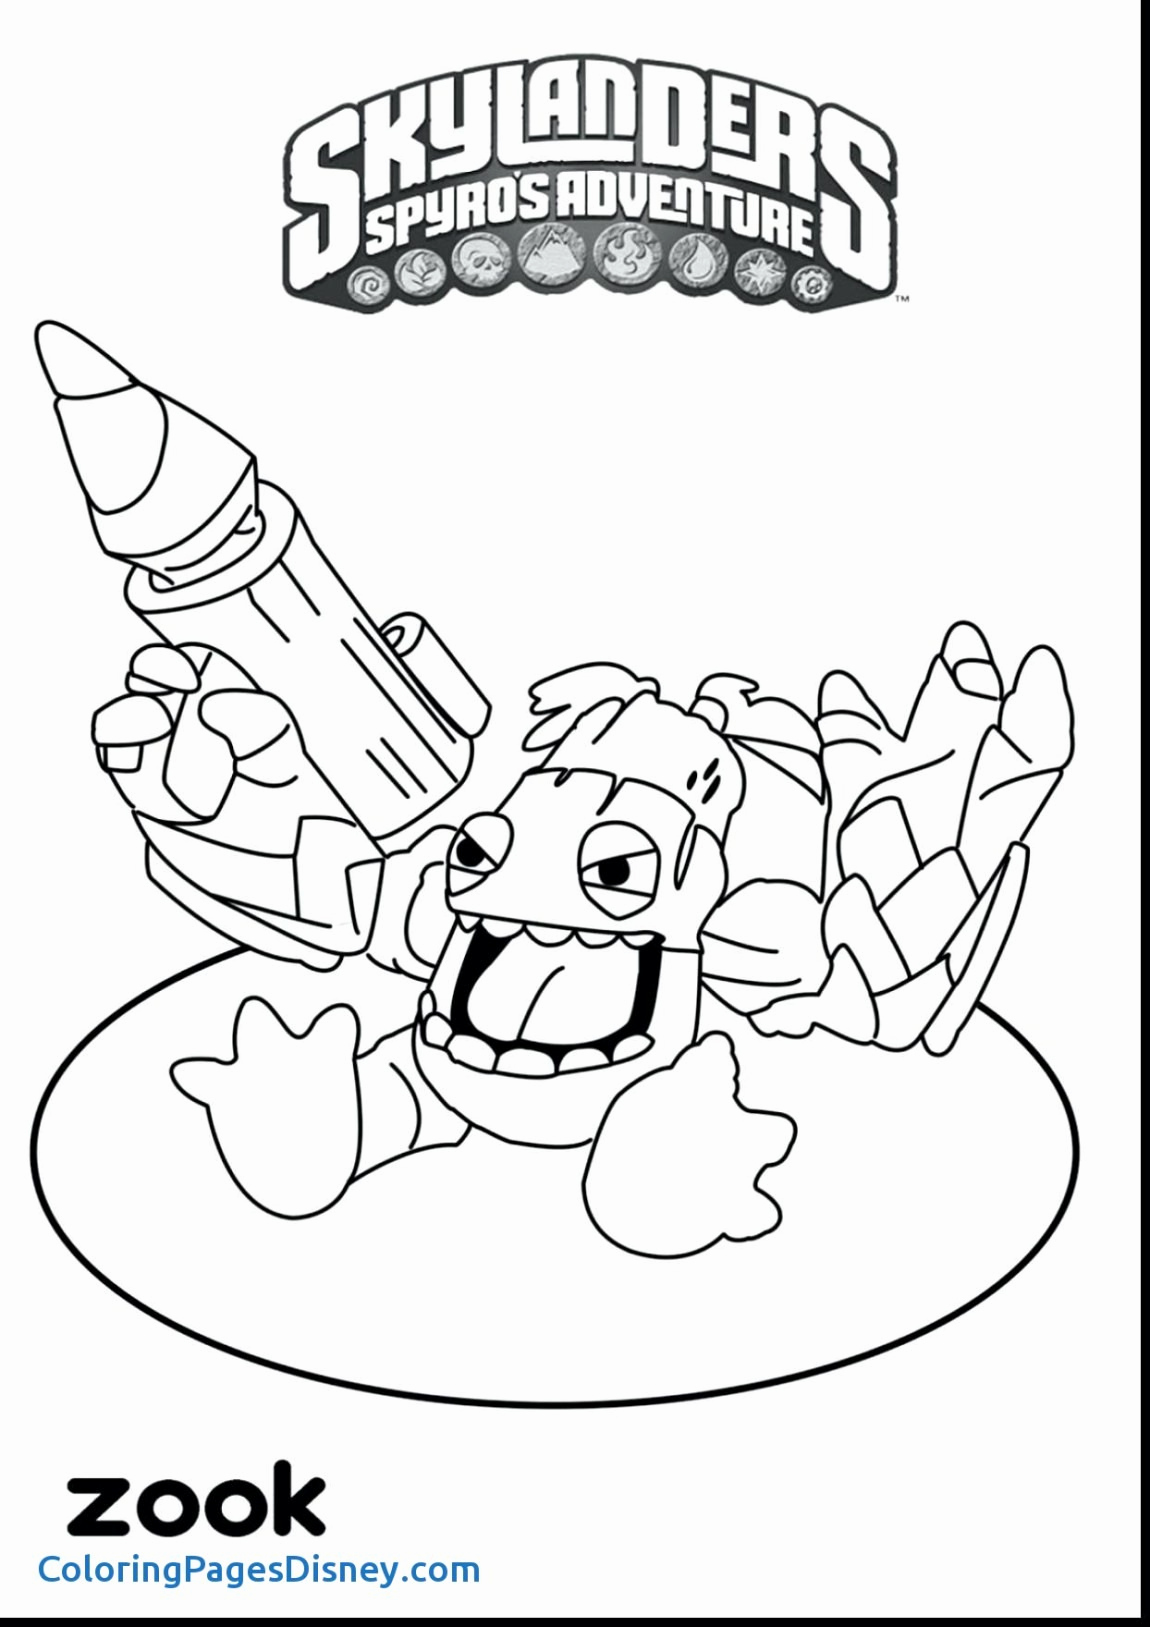 Christmas Coloring Pages Sunday School With Free Printable Unique